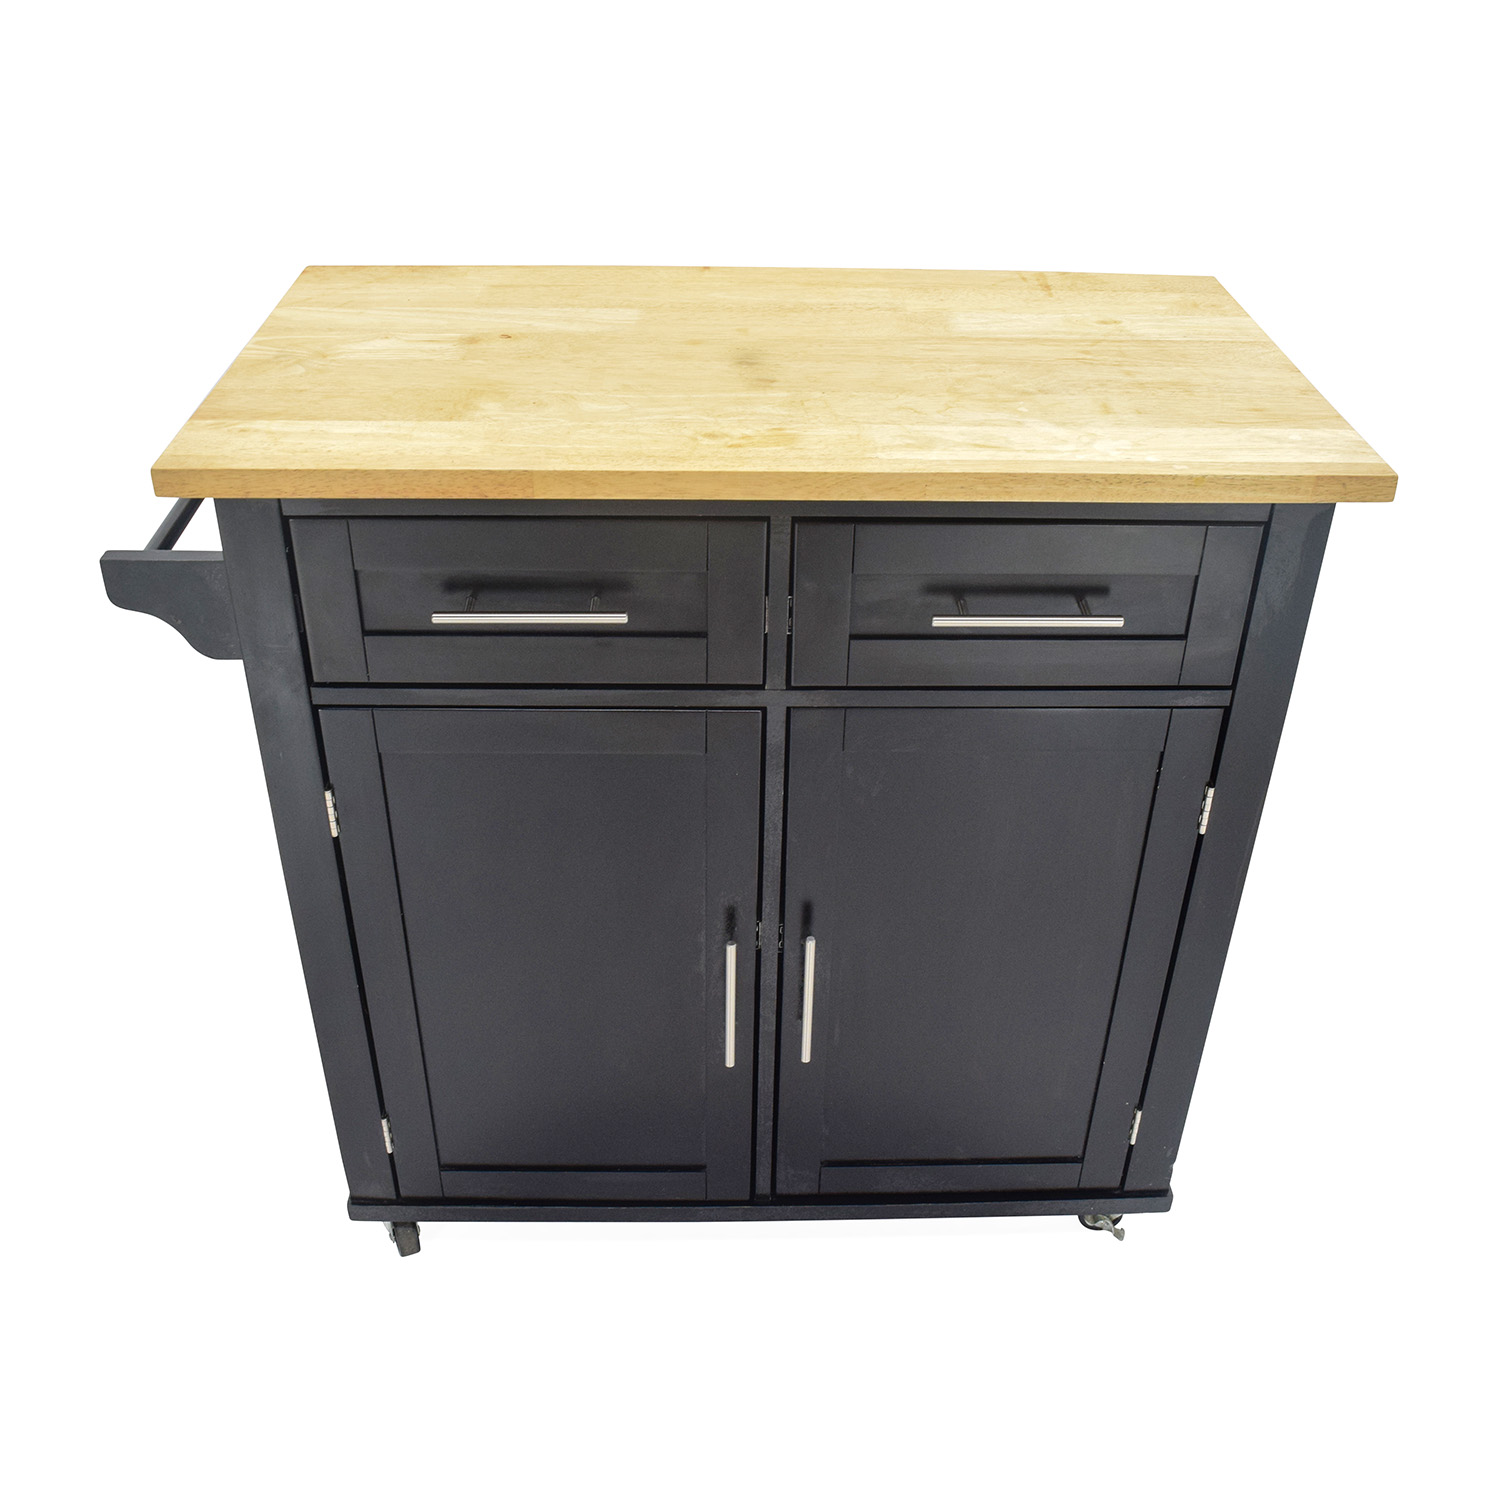 Crate and Barrel Crate and Barrel Kitchen Island on sale